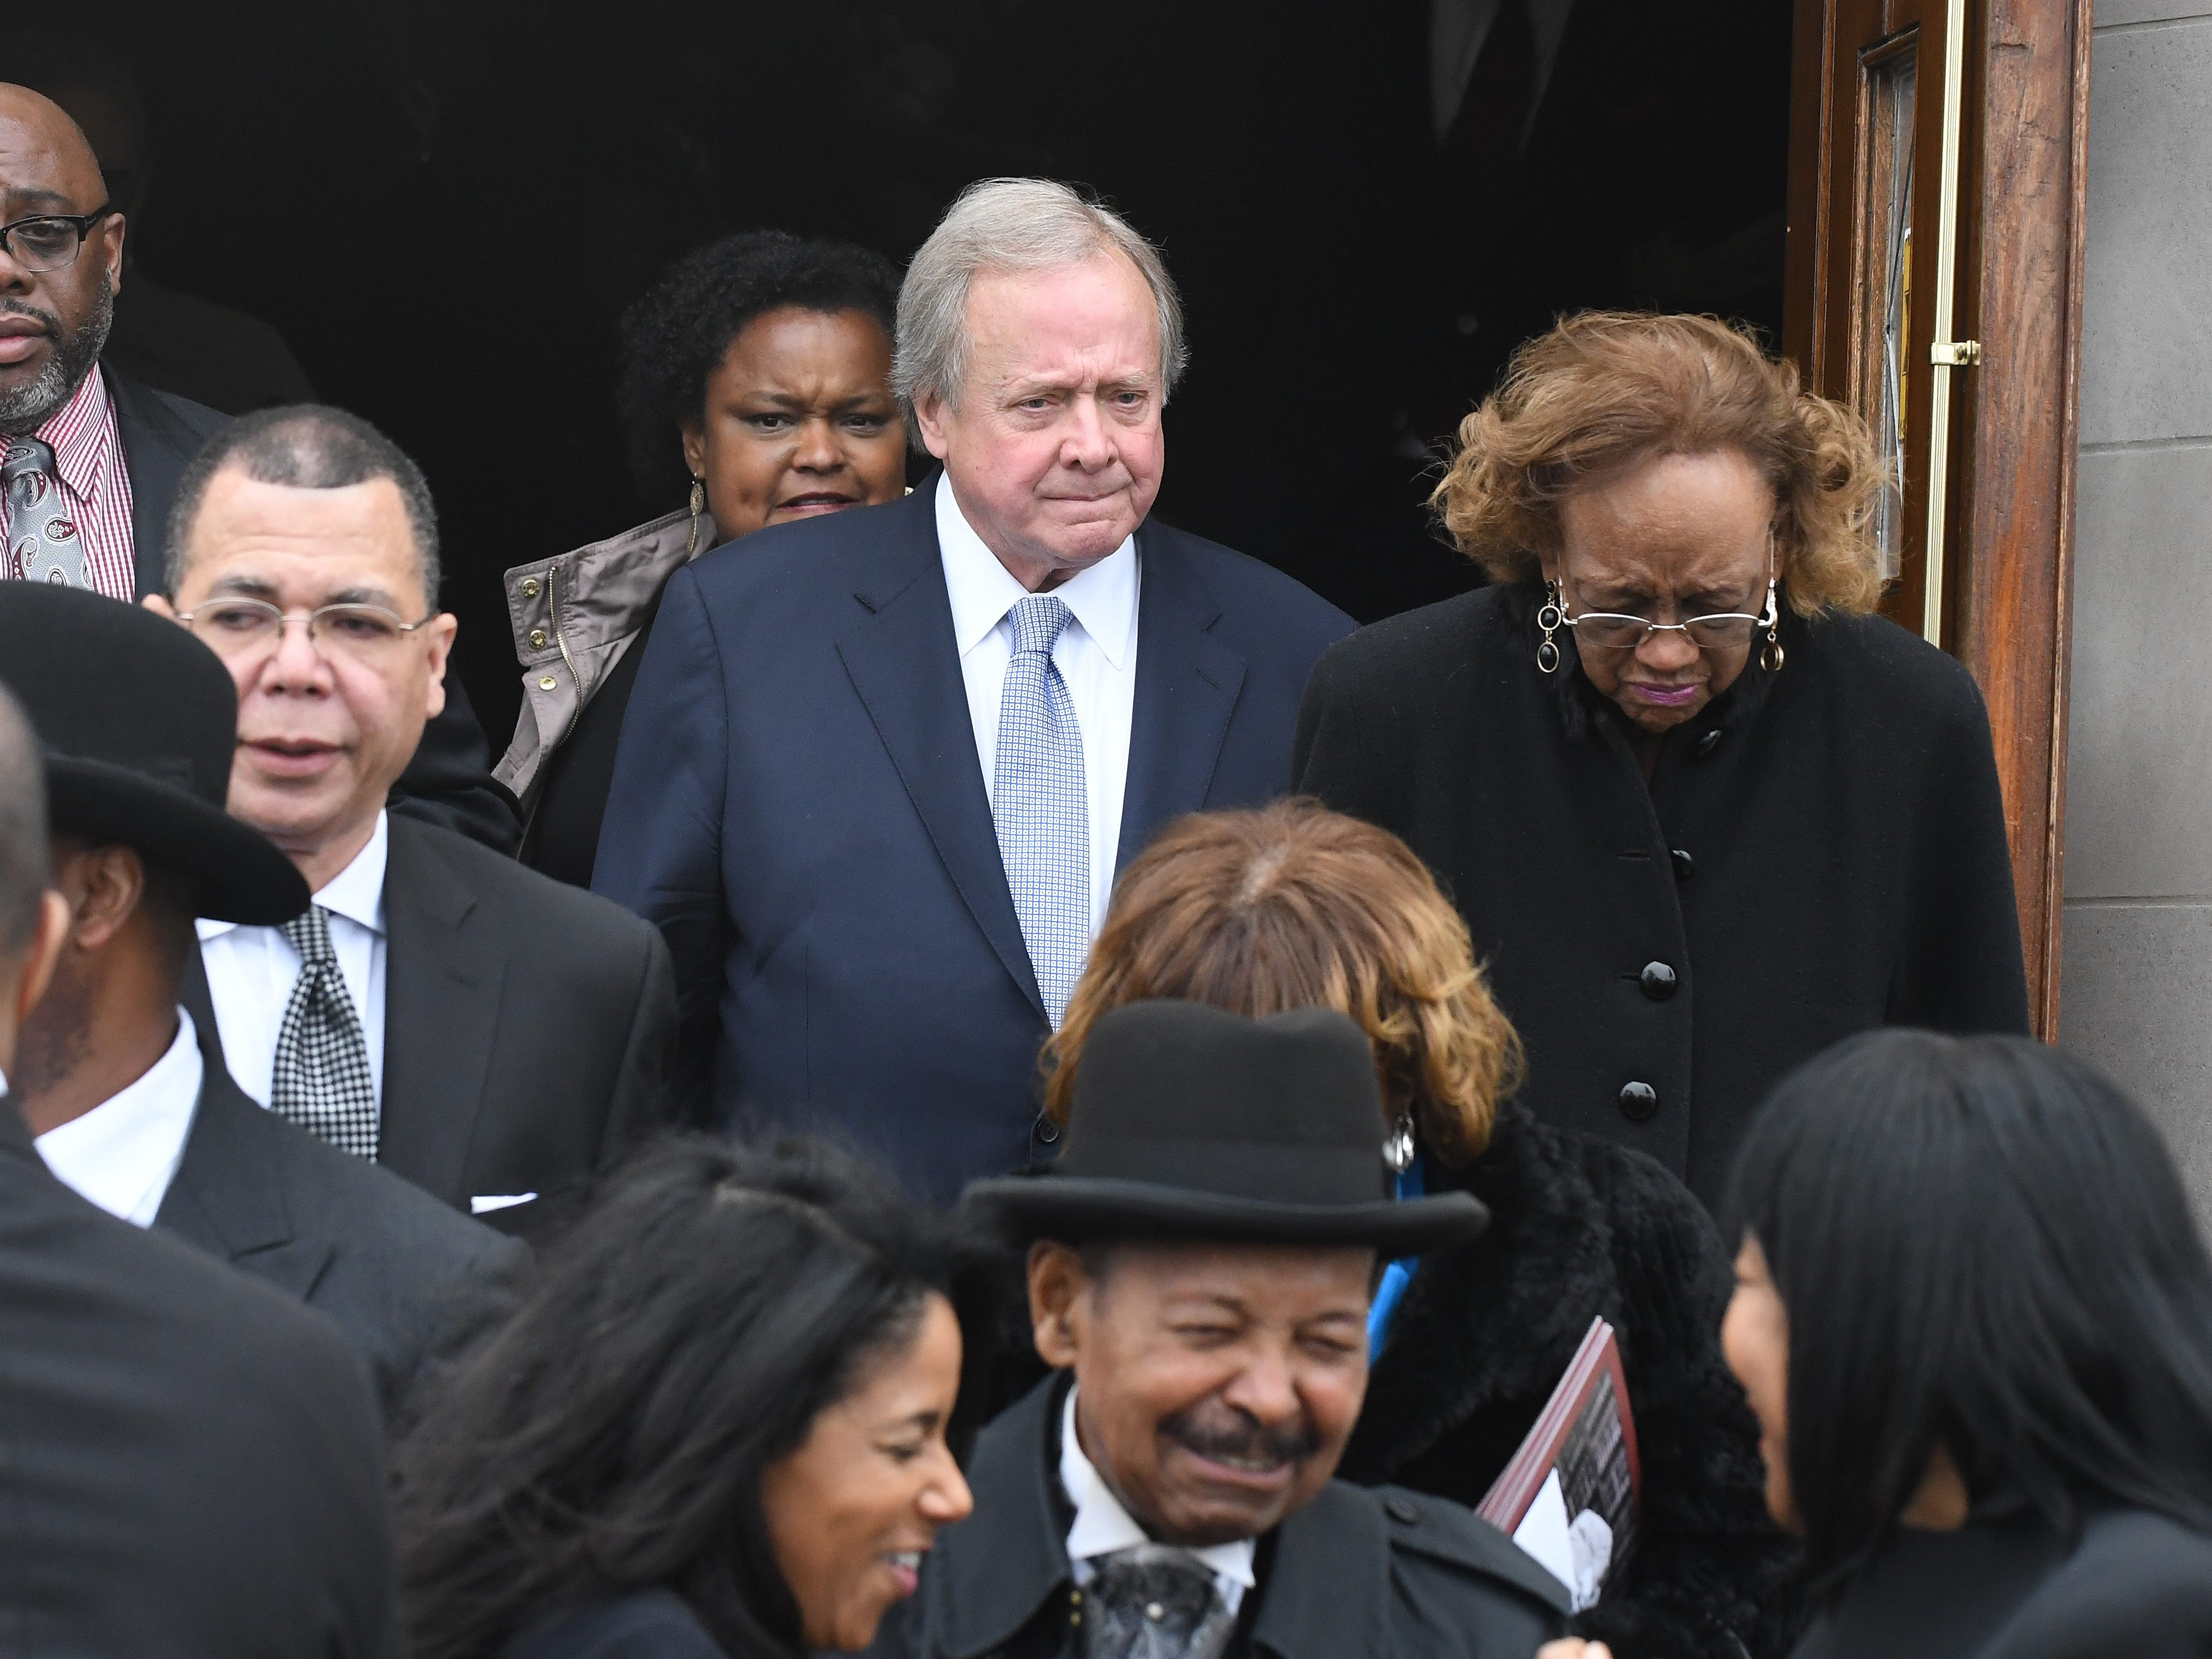 Edsel Ford II leaves the church after the funeral of Judge Damon Keith.